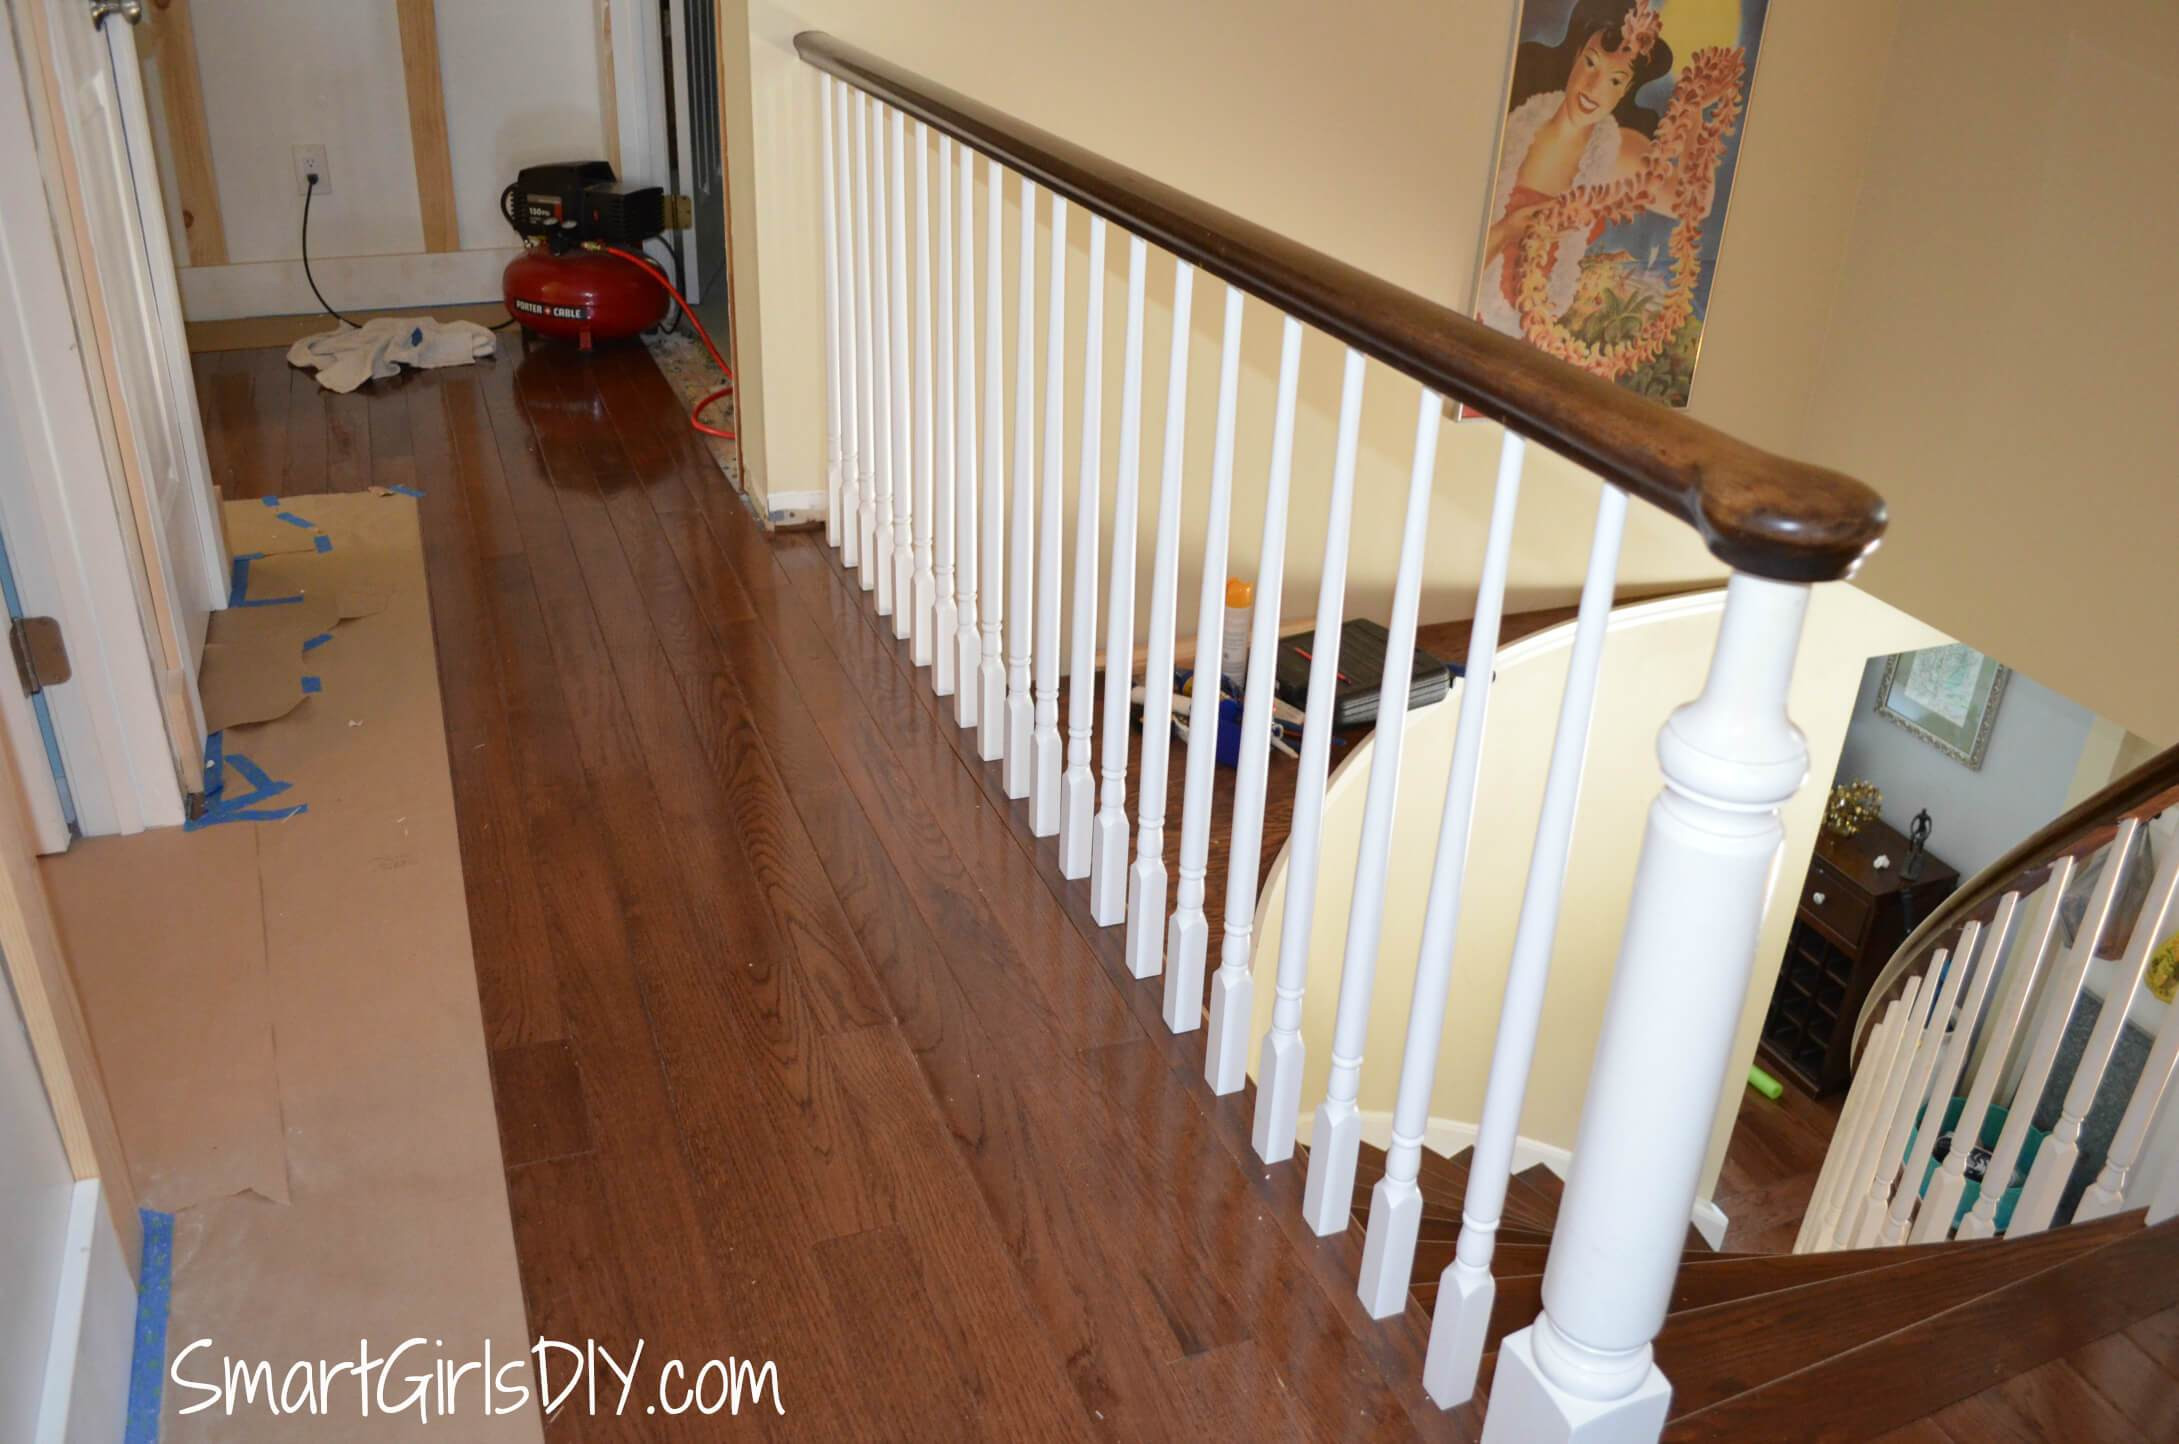 install bruce hardwood floors yourself of upstairs hallway 1 installing hardwood floors within upstairs hallway 2 hardwood spindles